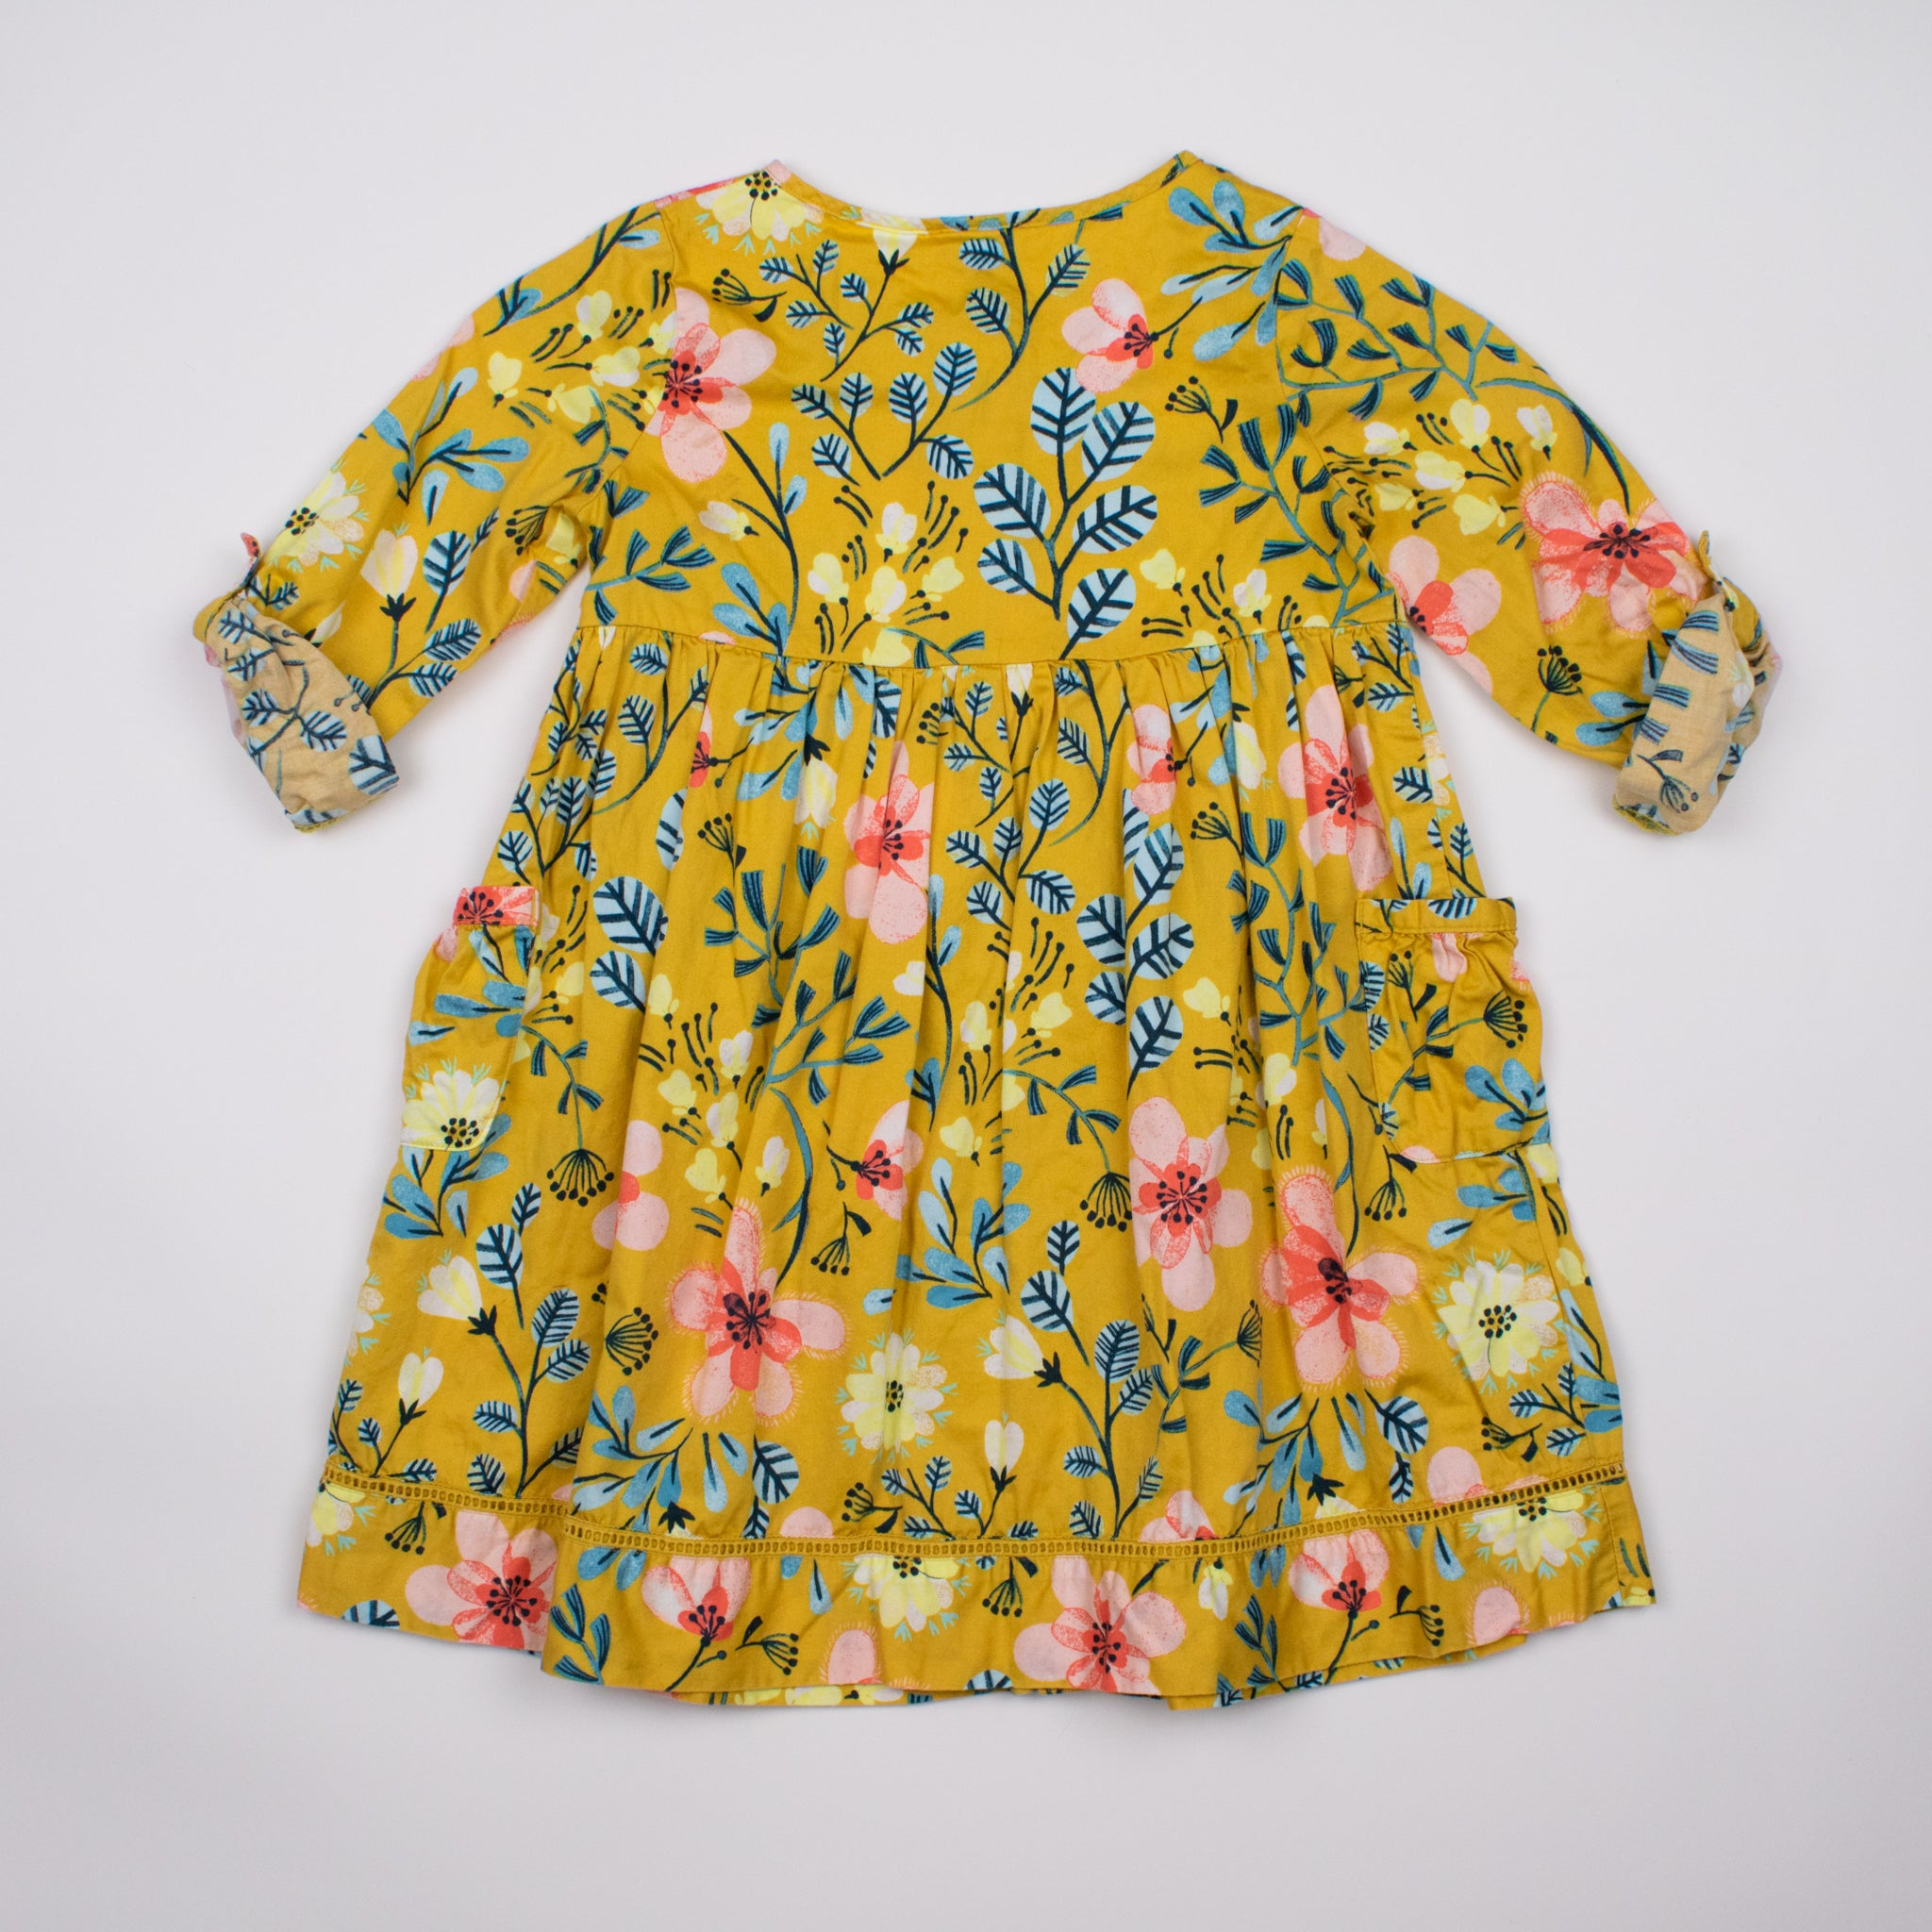 Yellow Floral 3/4 Sleeve Dress 5-6Y